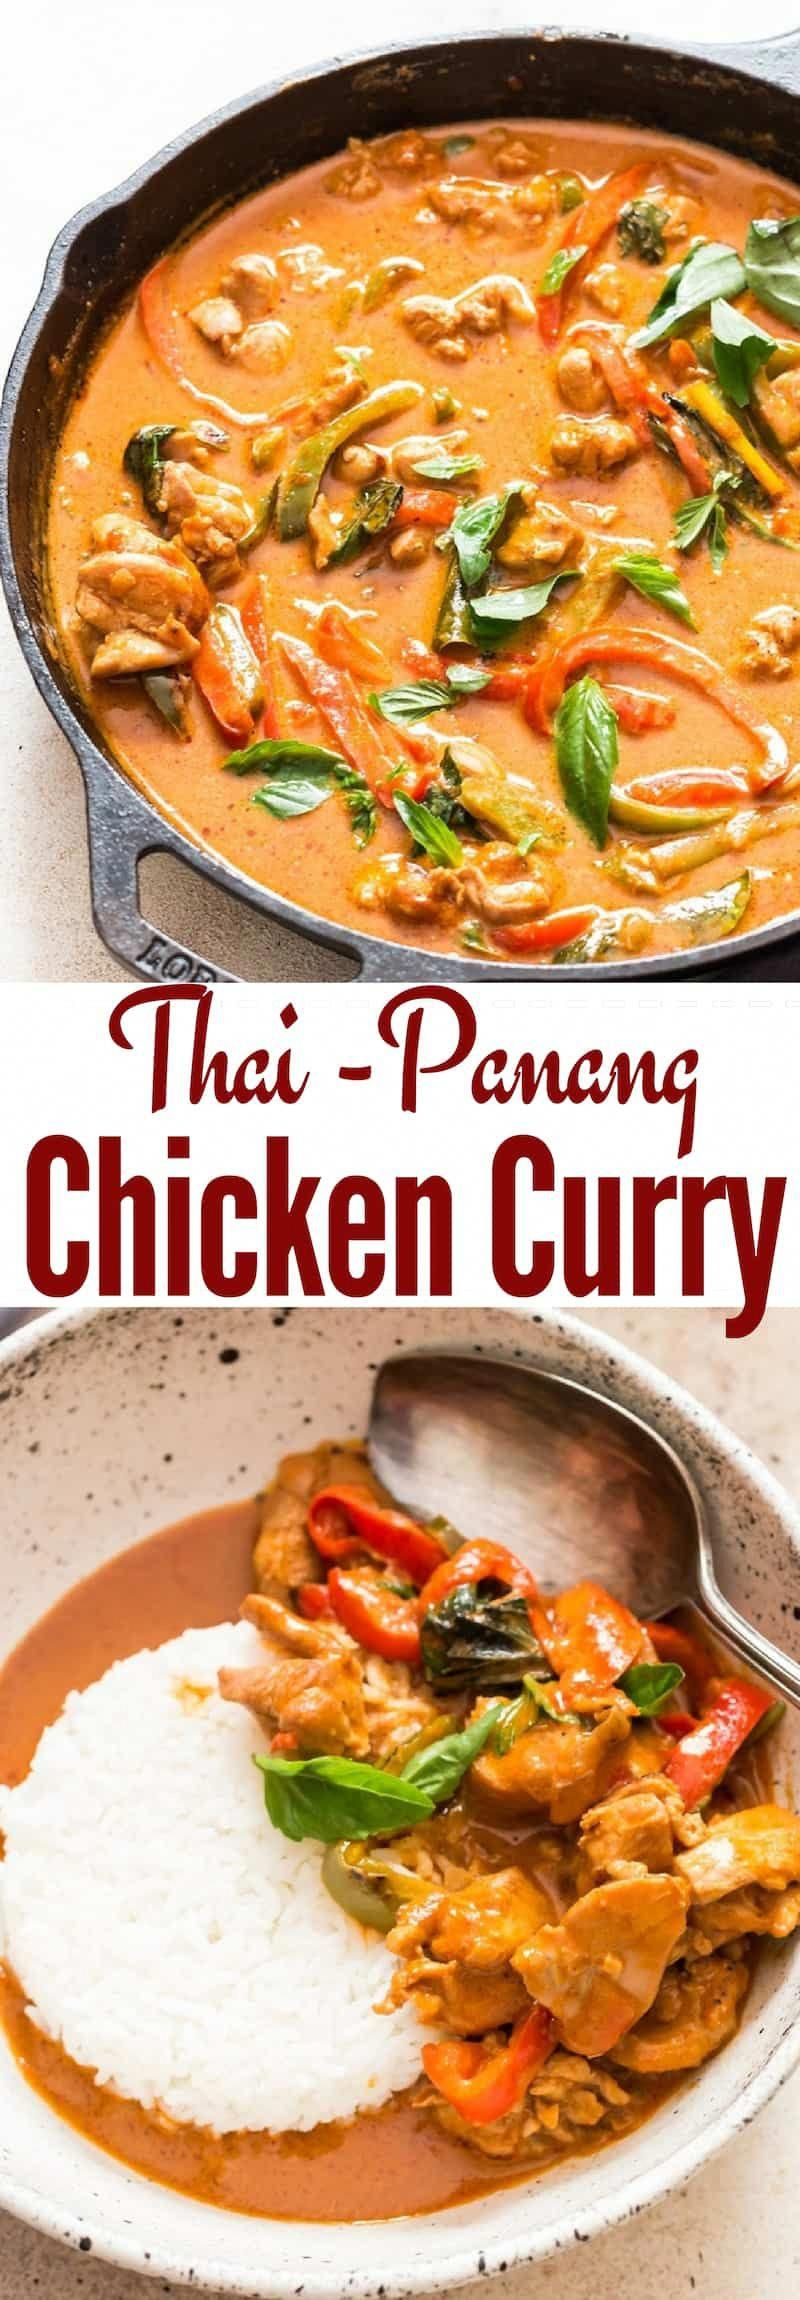 Best thai panang curry recipe with chicken recipe with